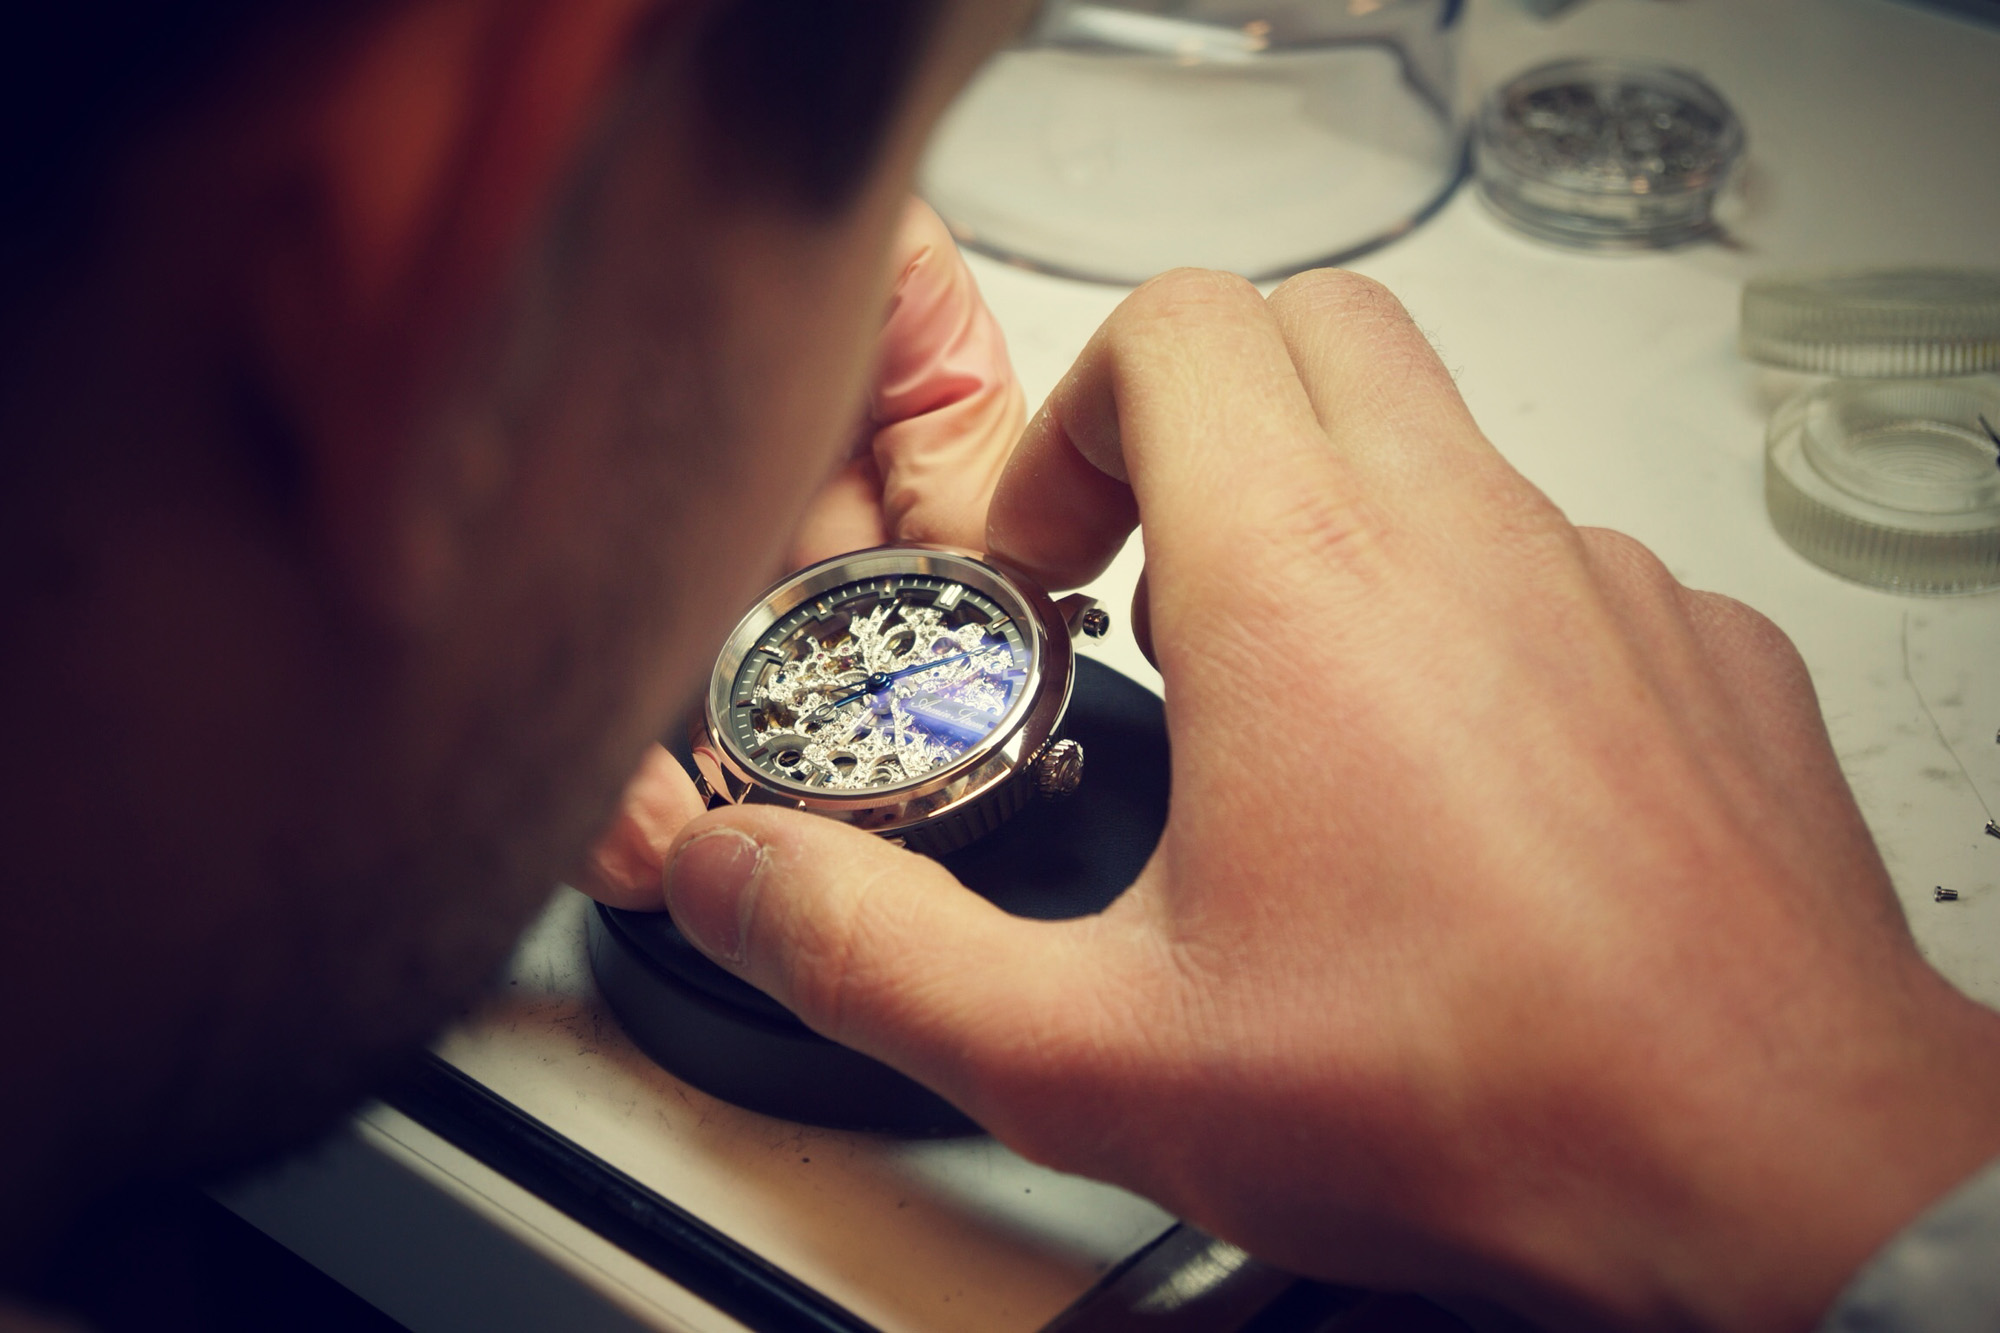 Armin Strom Factory Visit - Watchmaker at Work